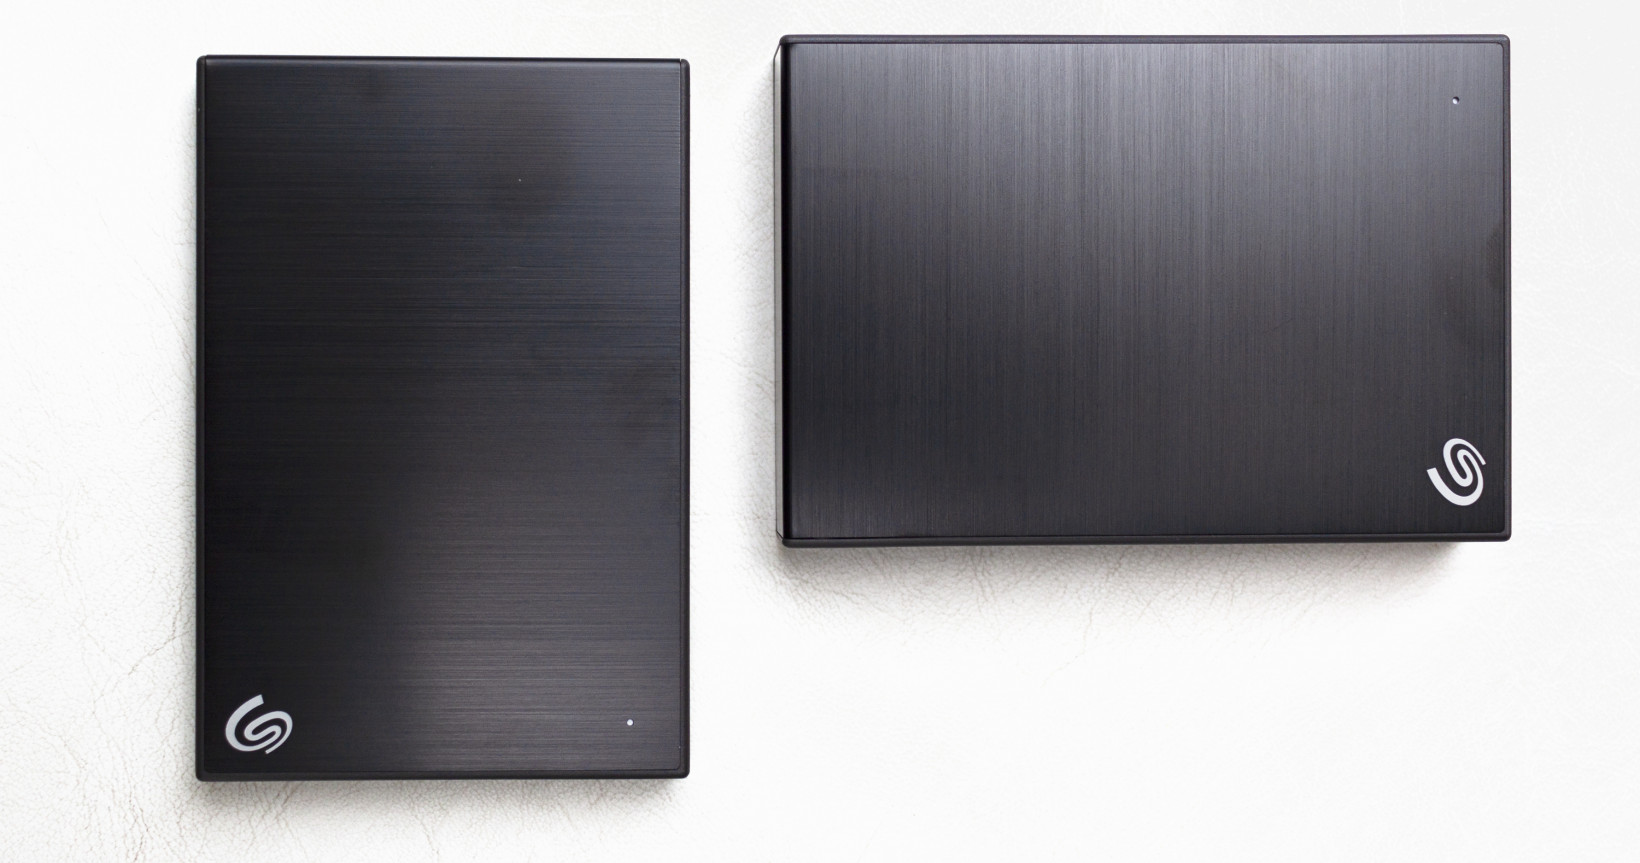 The 5TB model (left) is unfortunately far slower with write speeds than the slim 2TB model (right)